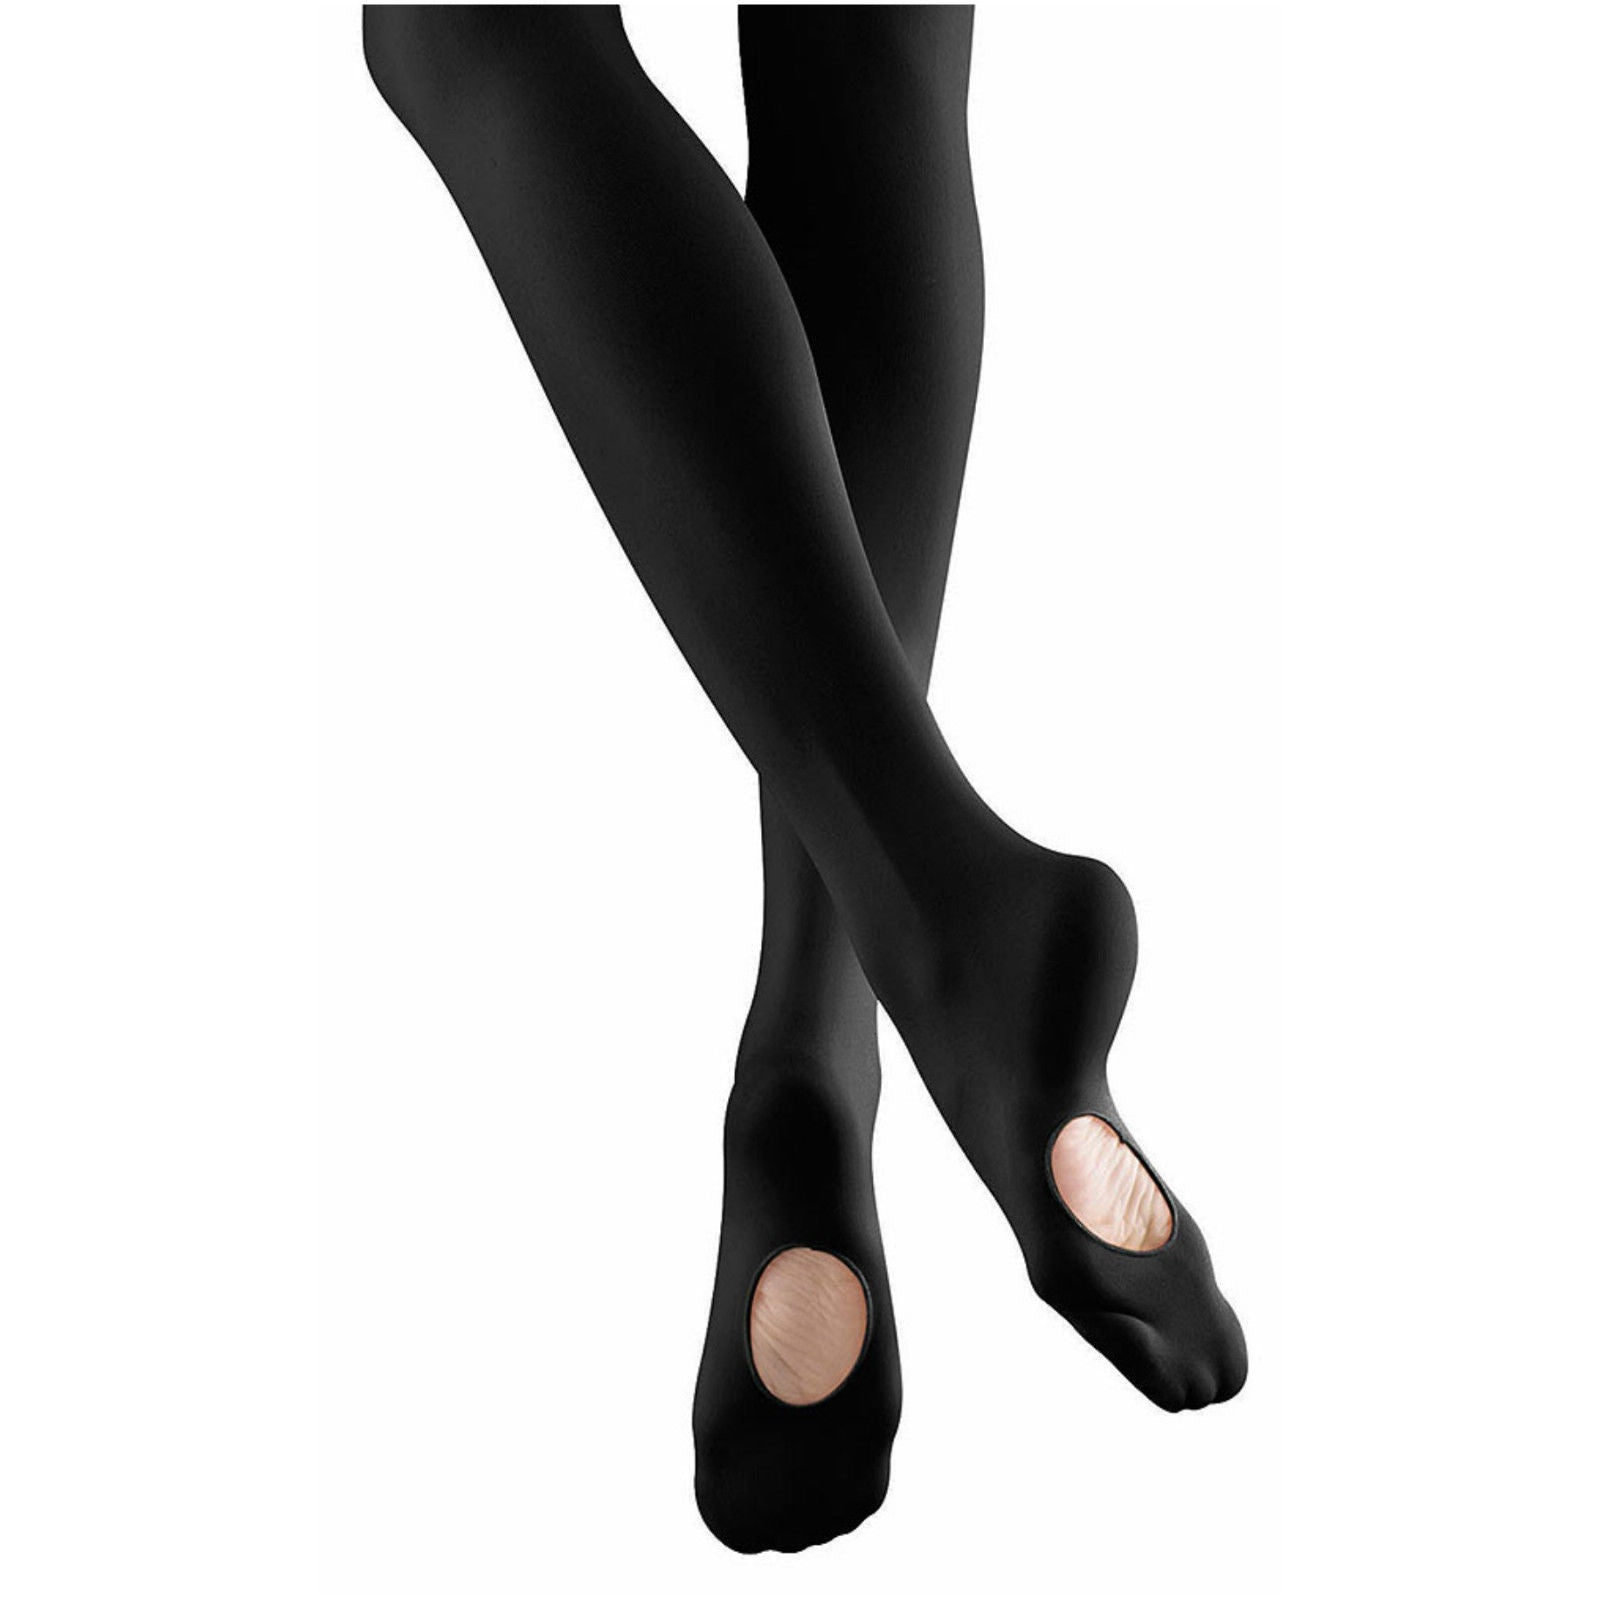 Mondor Black Durable Convertible Tights